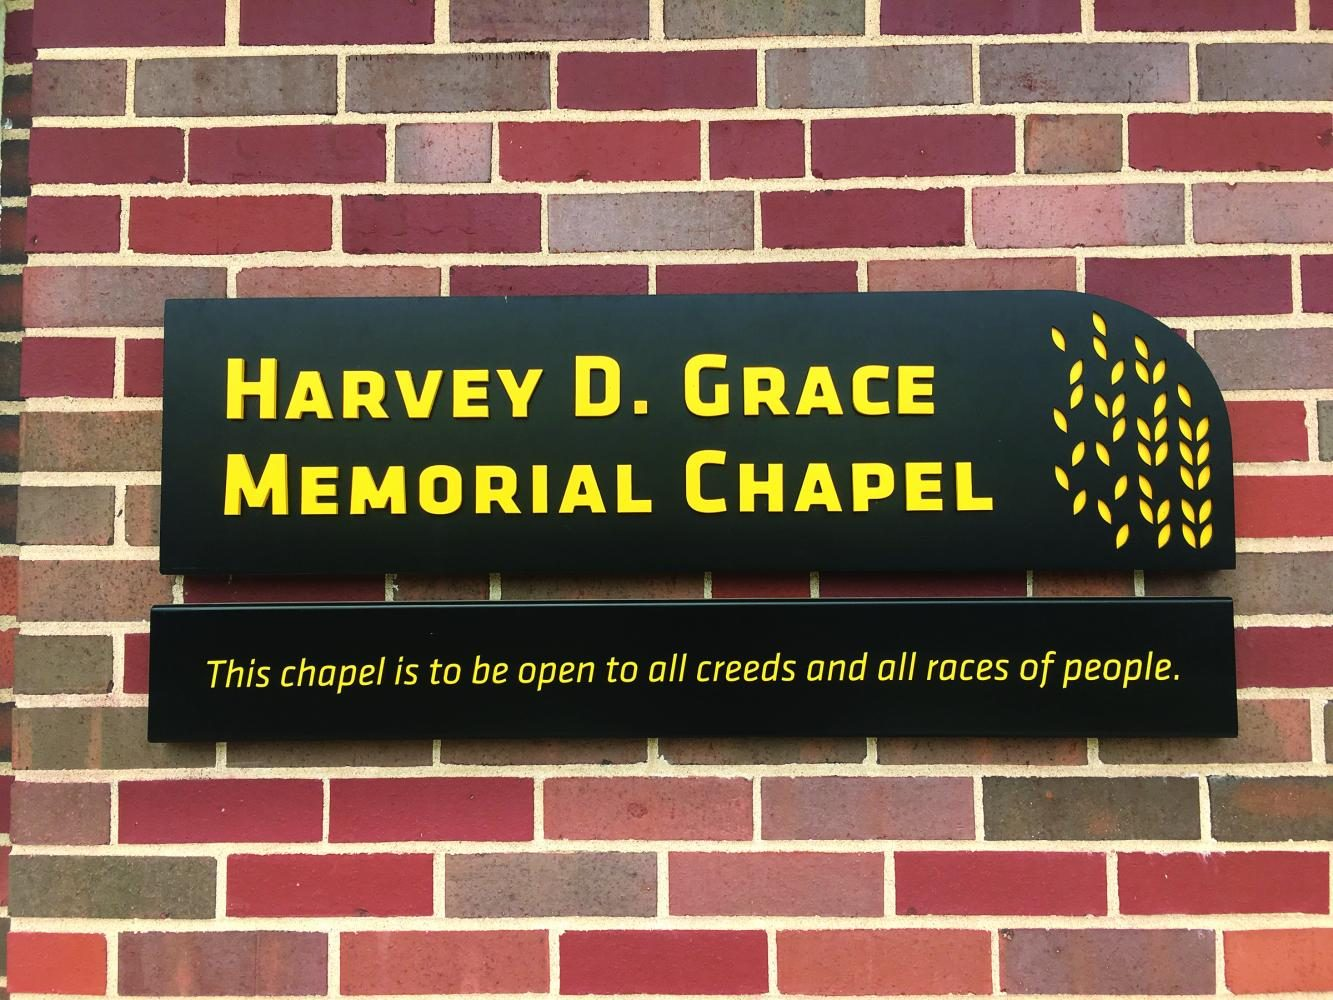 """The new sign outside the Harvey D. Grace Memorial Chapel reads This chapel is to be open to all creeds and all races of people."""""""